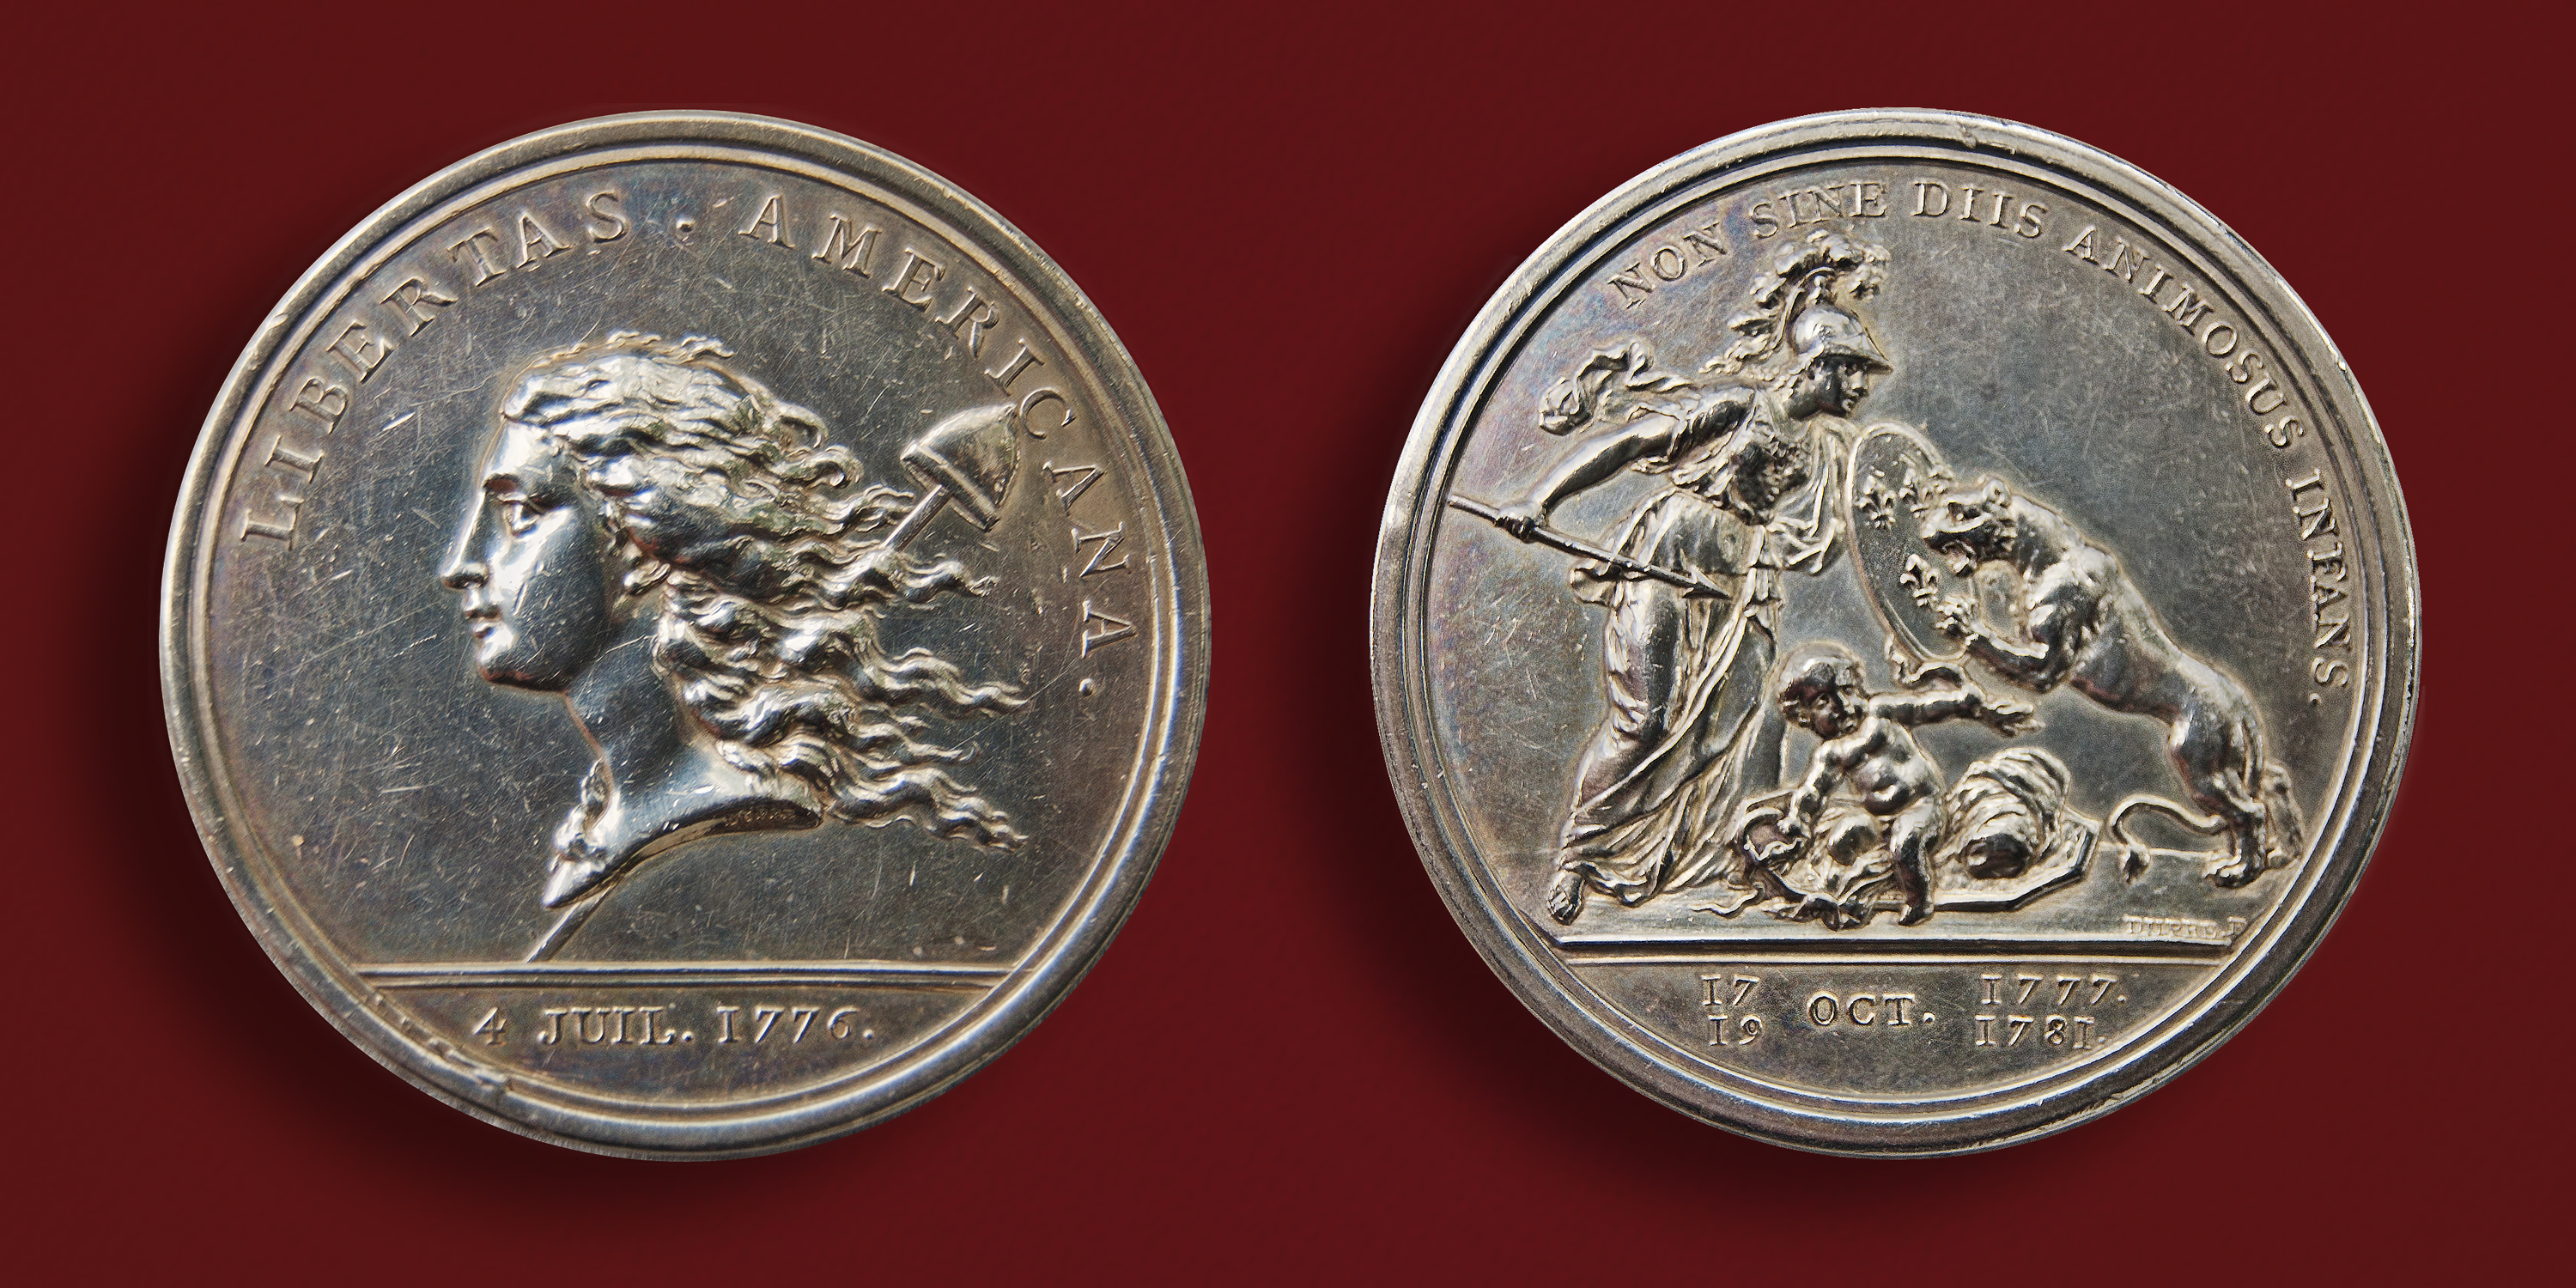 The victory at Yorktown was honored in a 1783 medallion minted in Paris and designed there by U.S. Ambassador Benjamin Franklin. Description: